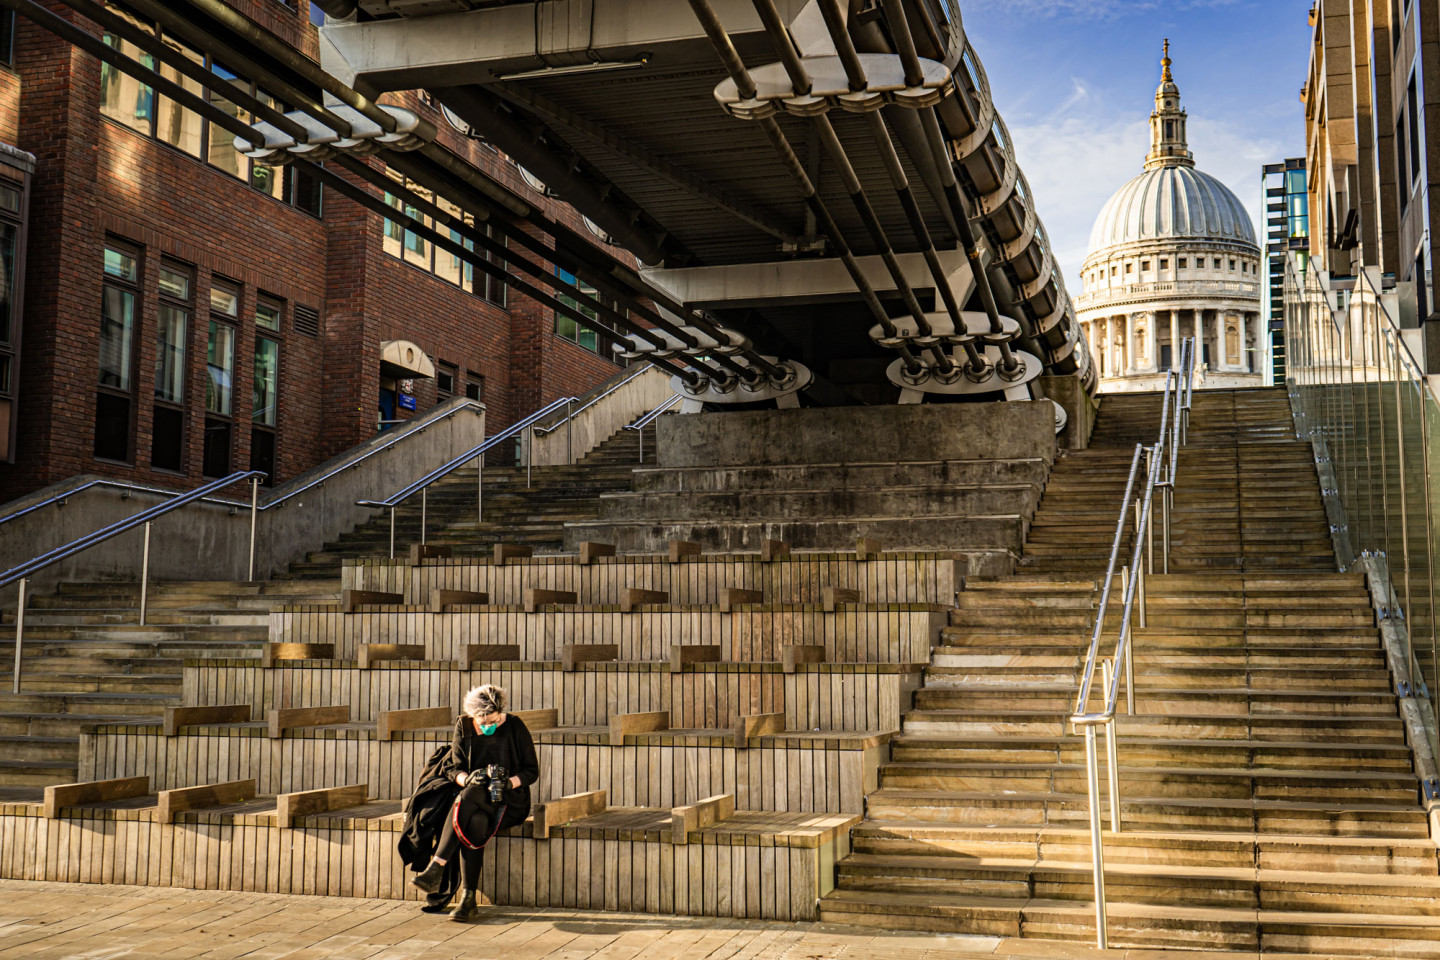 A background of St Pauls early morning on May 4th © Richard Lawrence